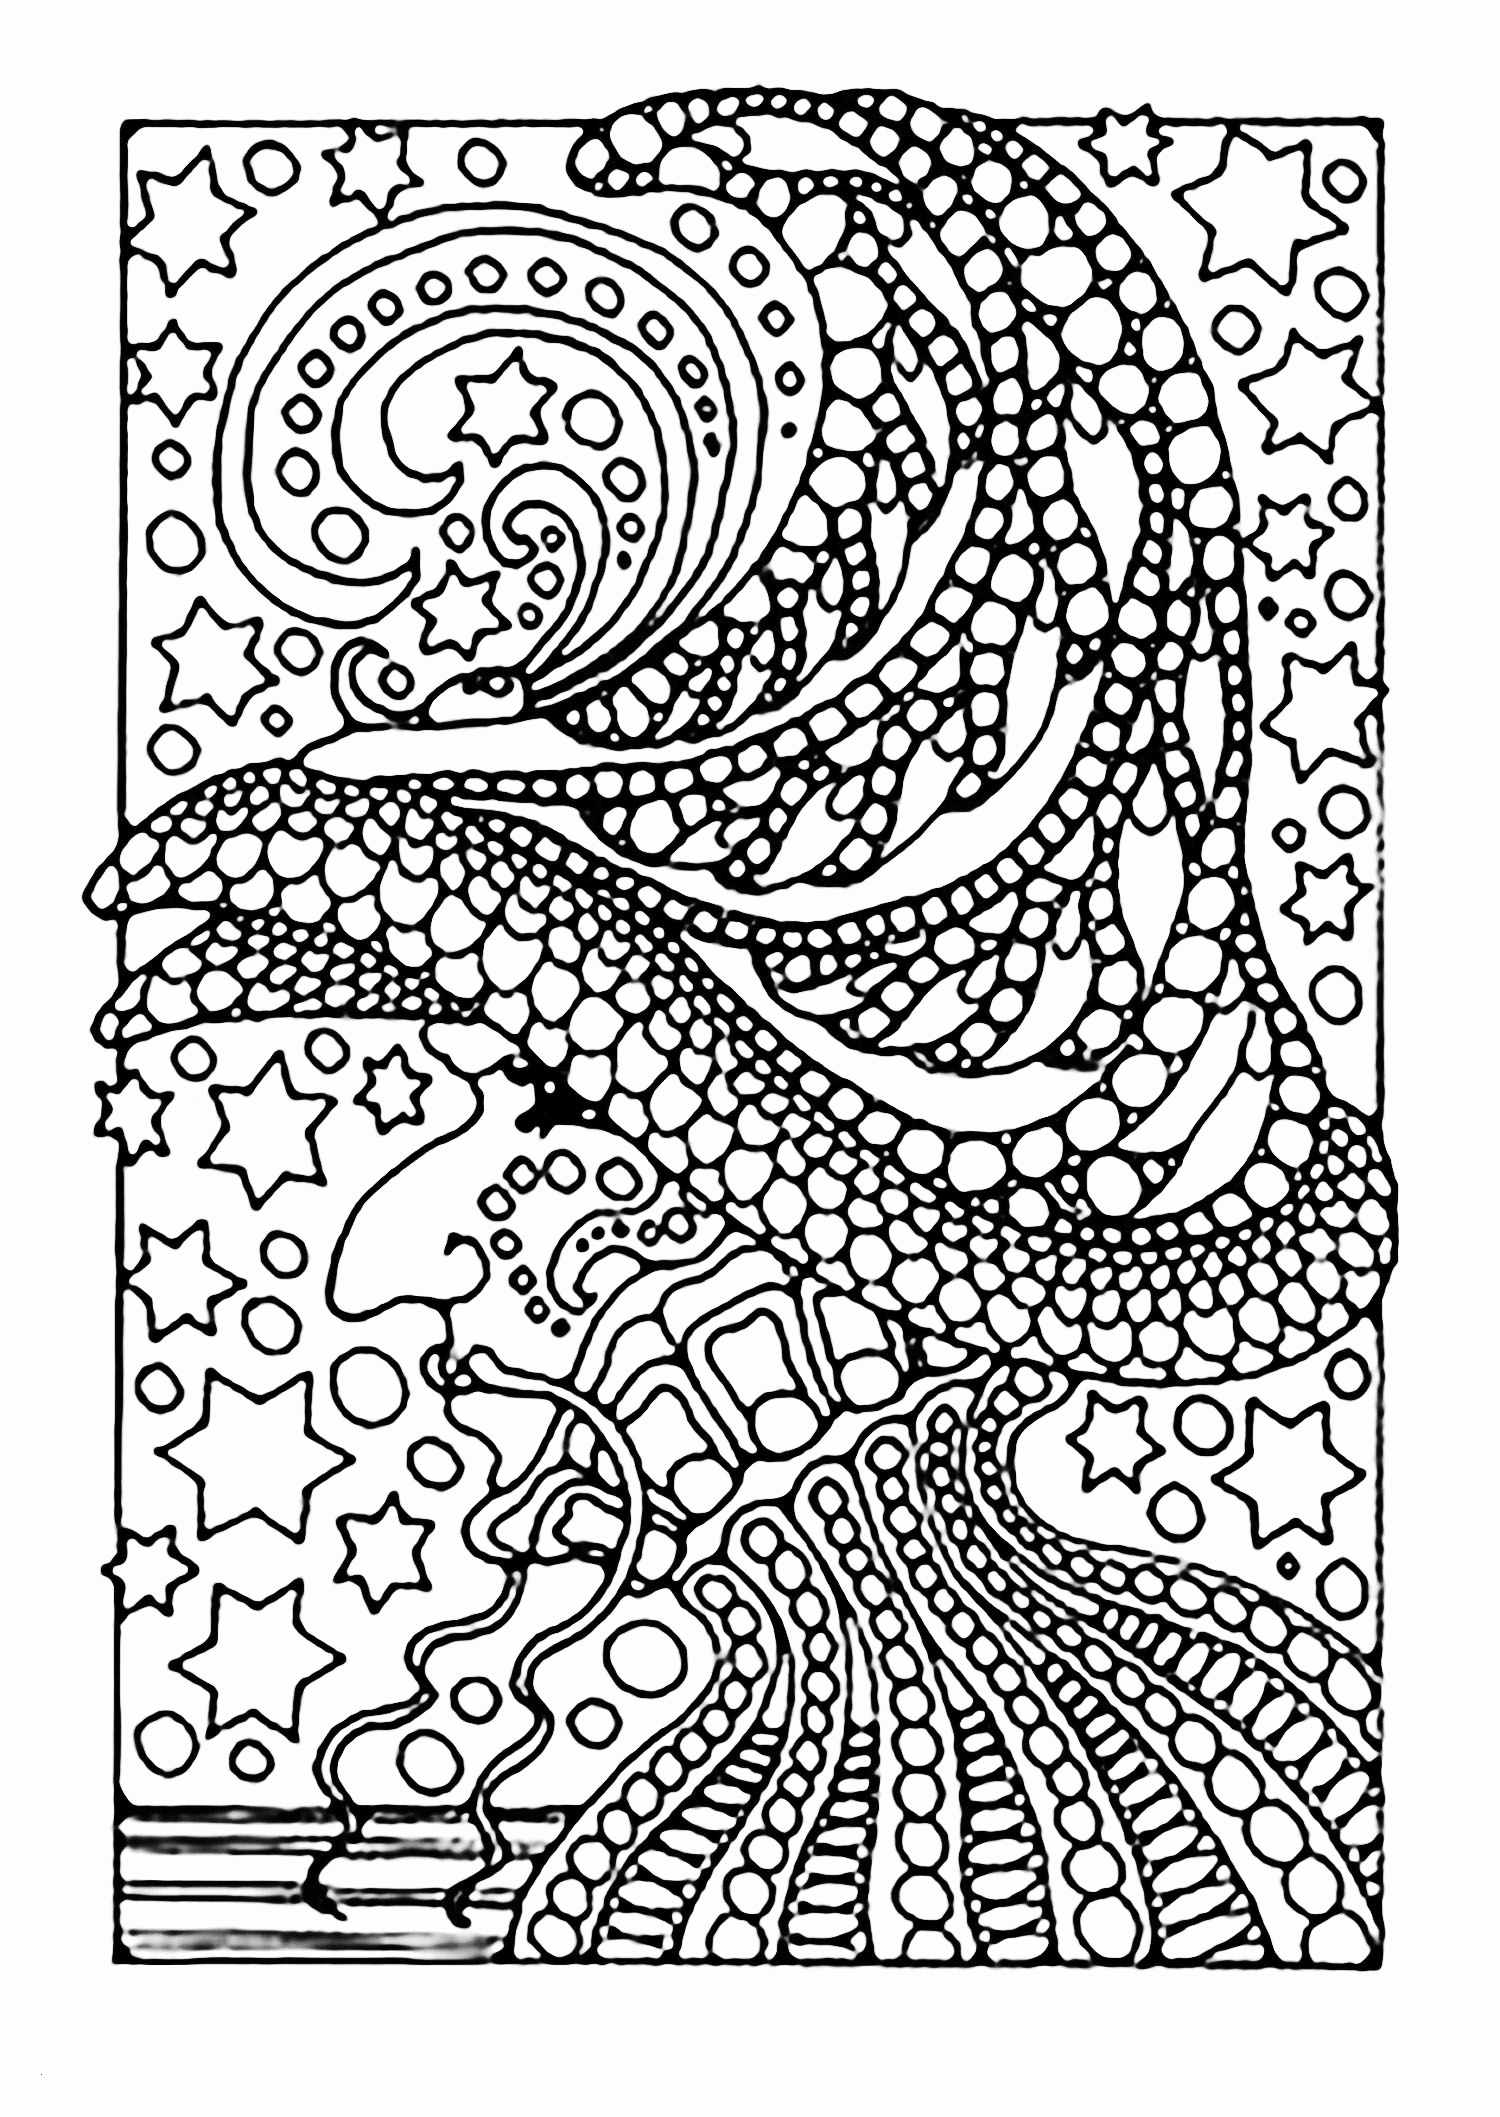 cooking coloring pages Download-Coloring Pages Giraffe Cooking Coloring Pages Lovely Cool Coloring Page Unique Witch 6-e